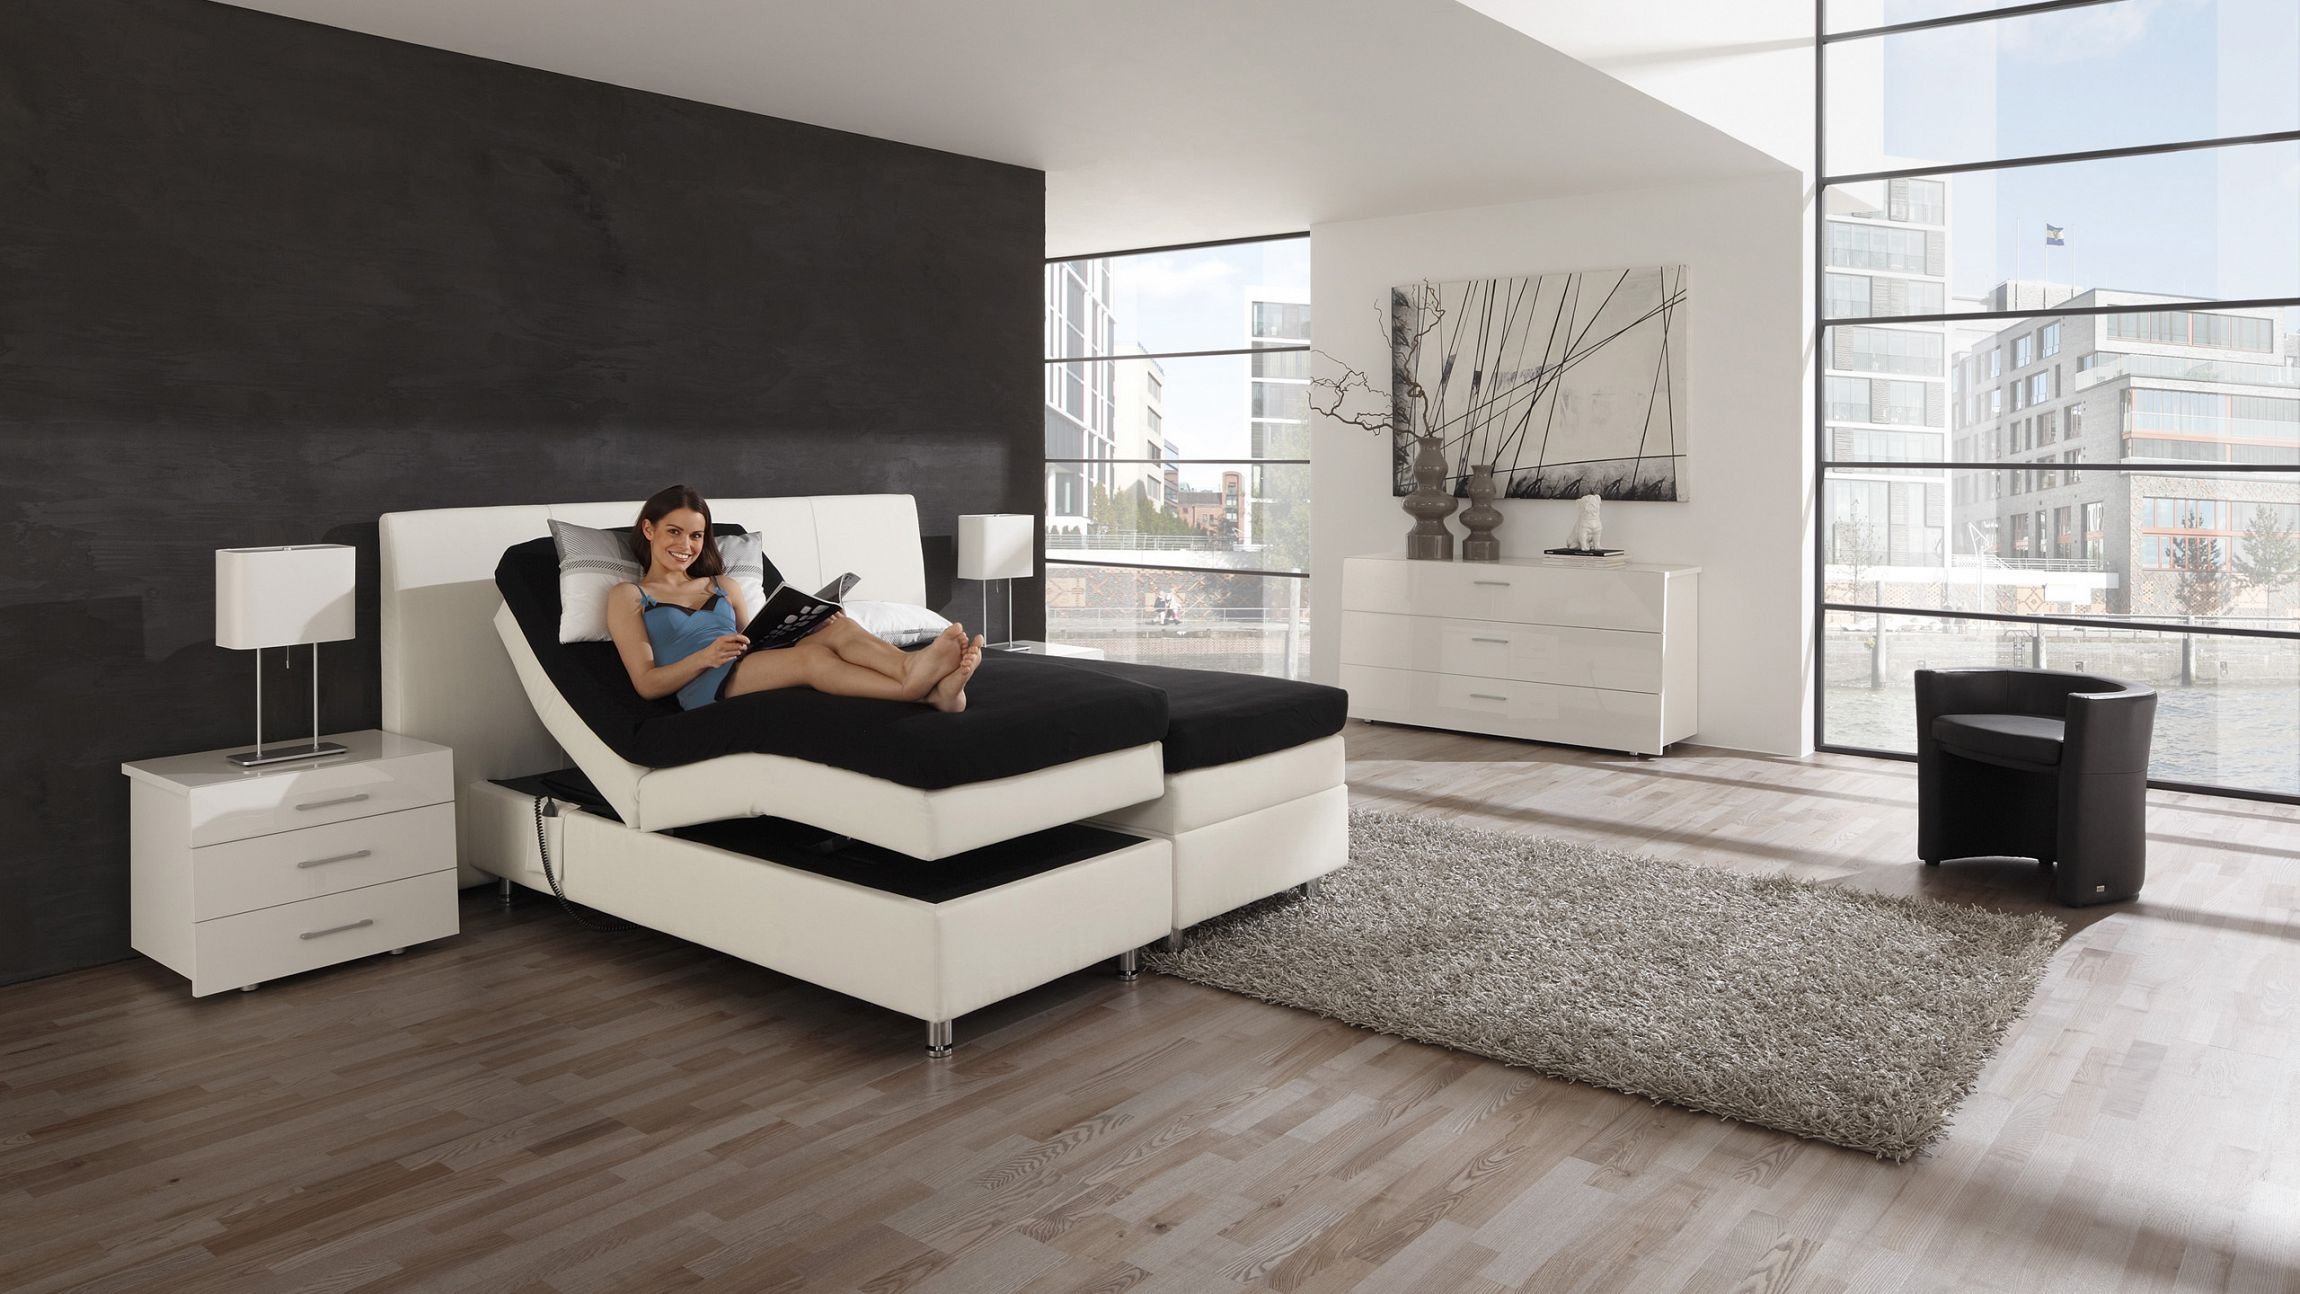 adjustable bed beds and bed sheets innovations pinterest